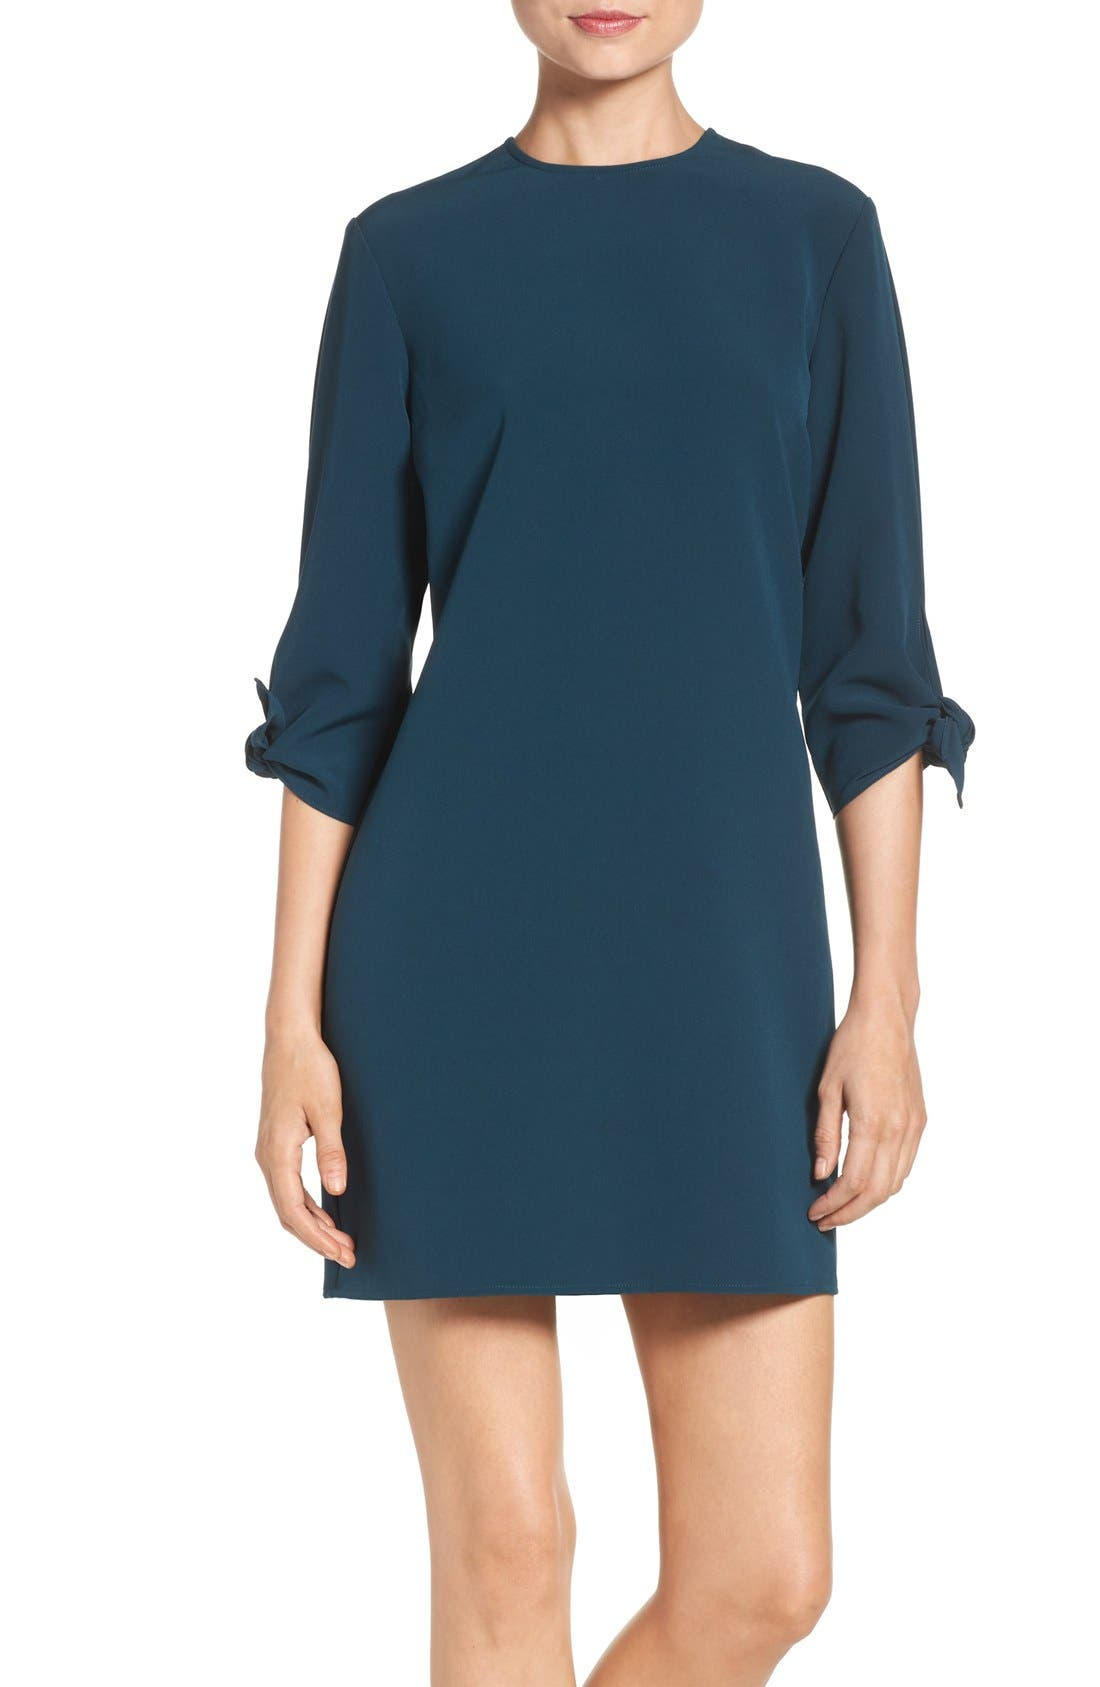 Alternate Image 1 Selected - Charles Henry Woven Shift Dress (Regular & Petite)